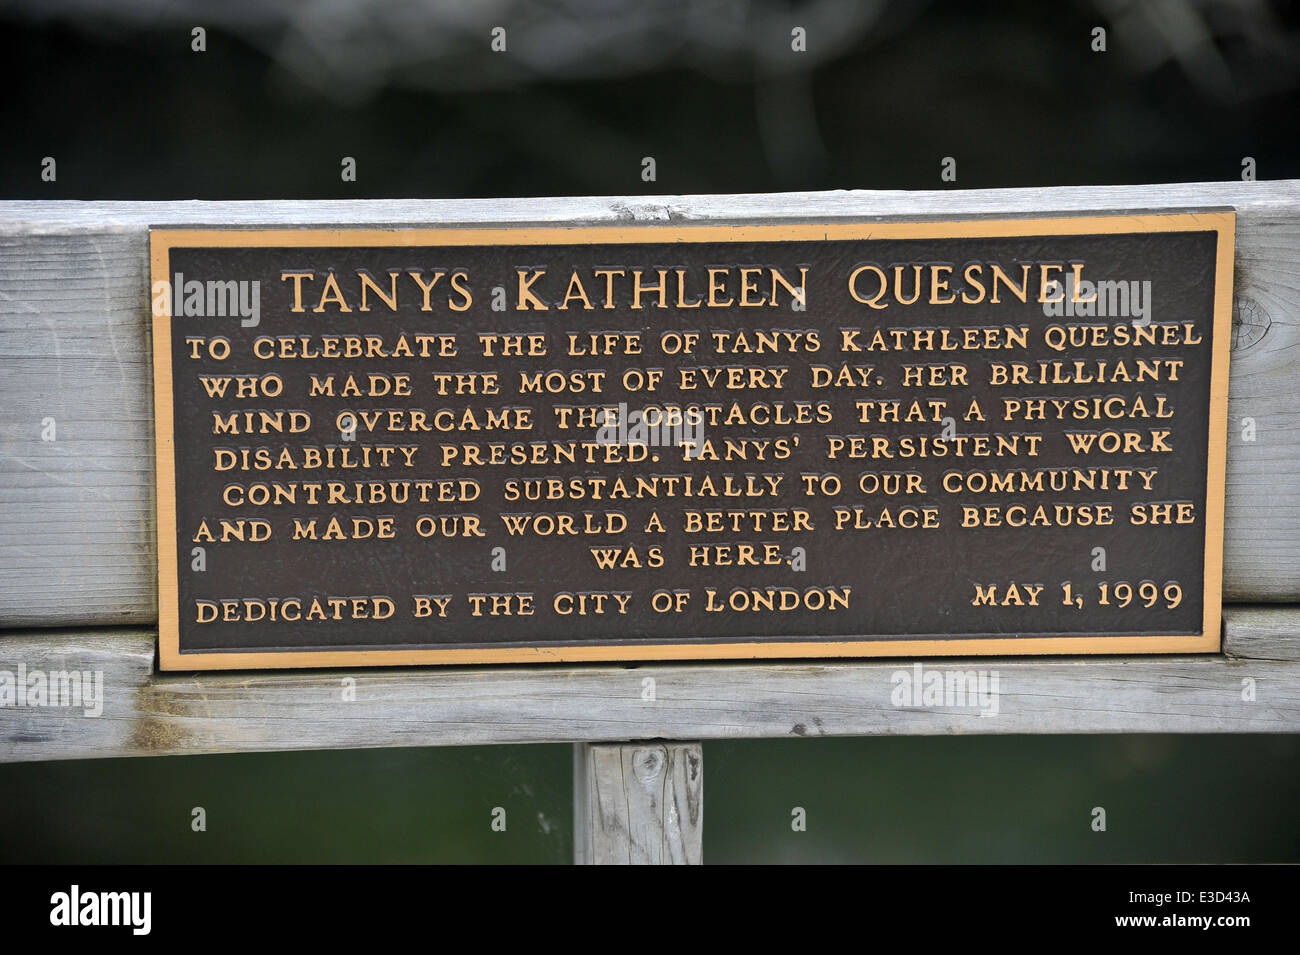 A Memorial Plaque On A Bench In A Park In London Ontario